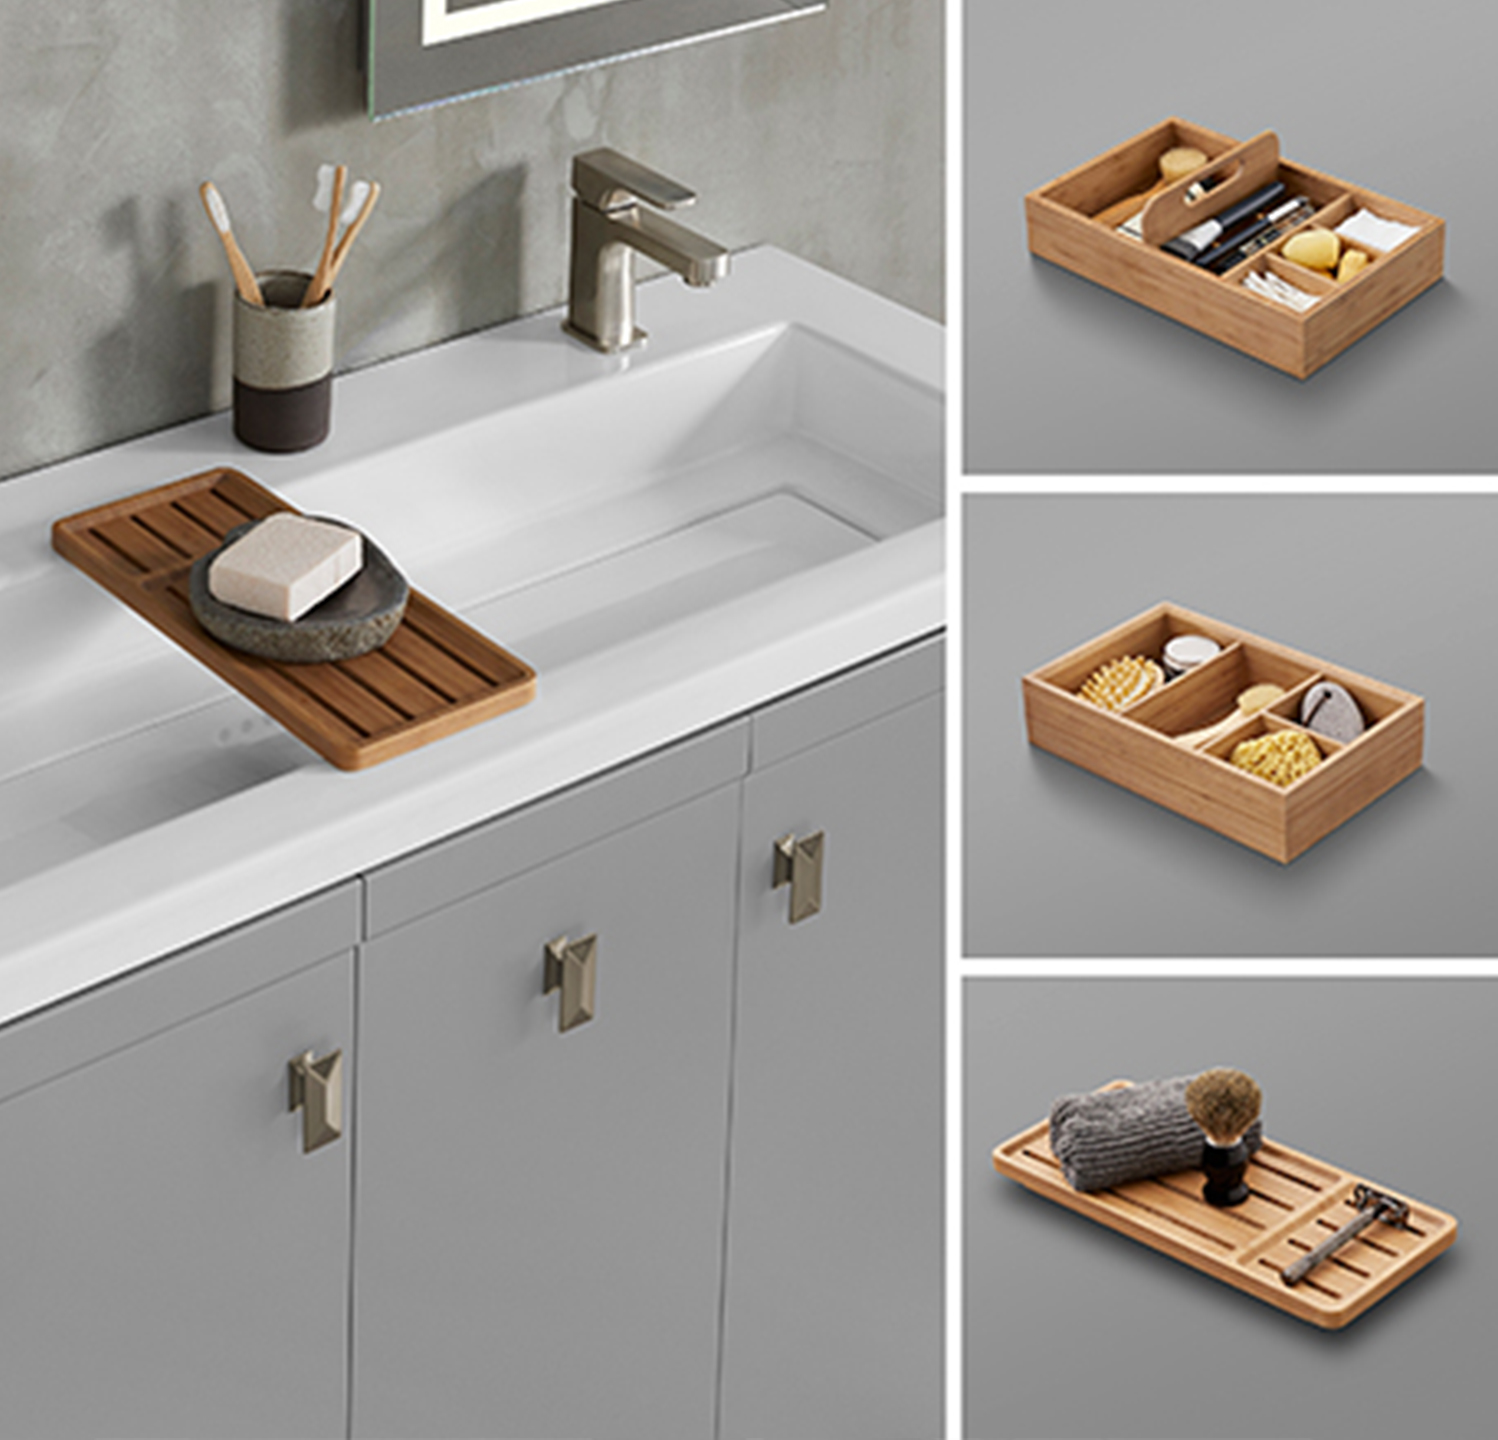 Users can accessorize with a make-up tray, storage tray or bamboo sink bridge.